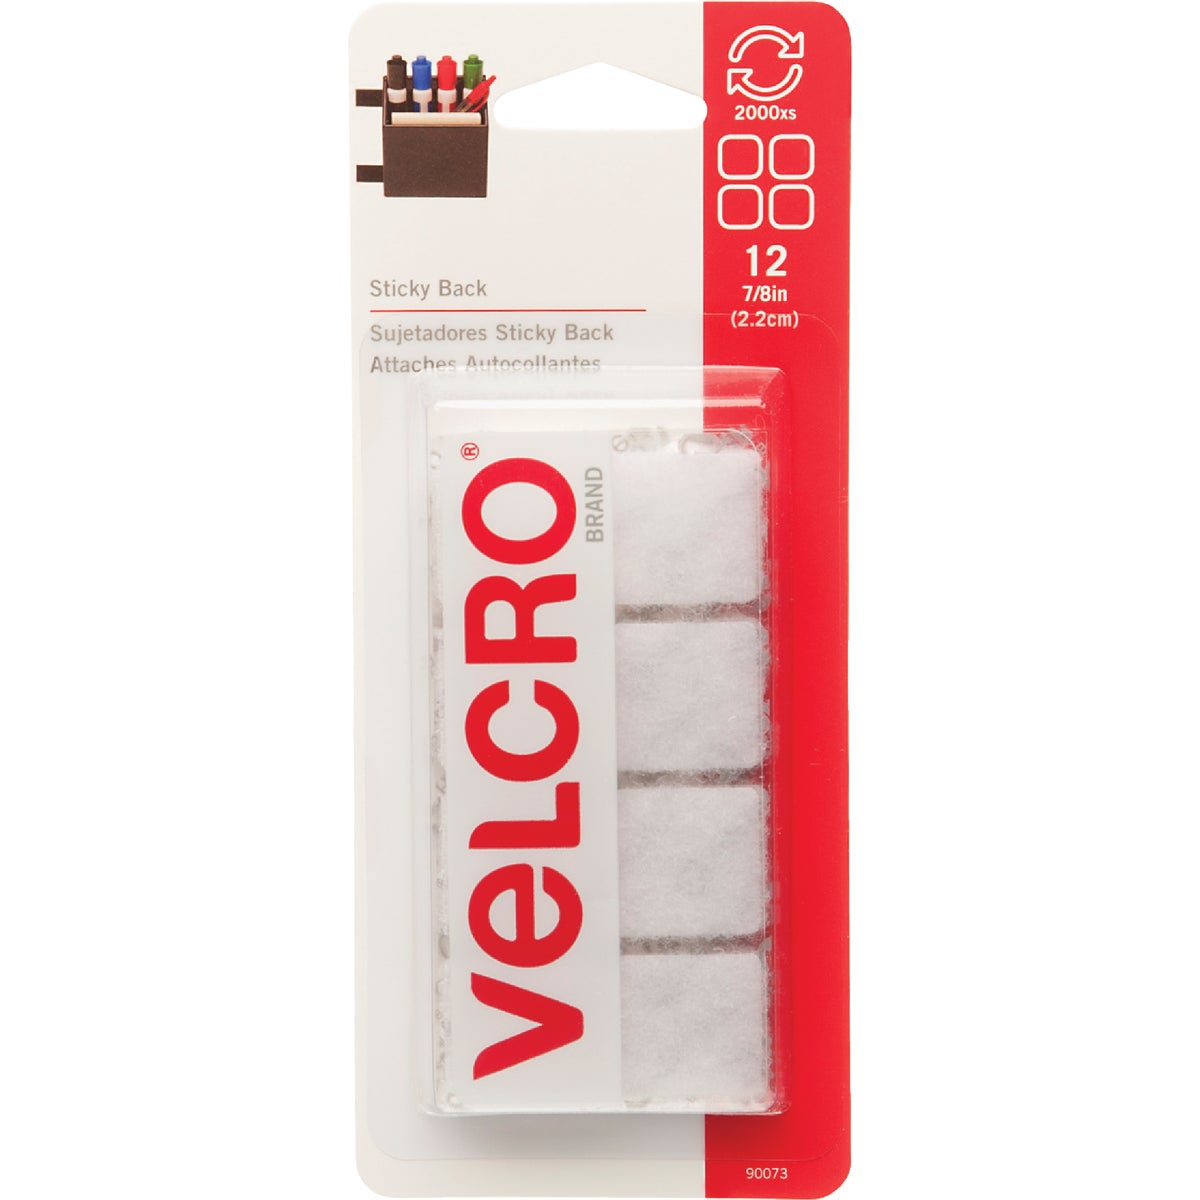 WHT SQ ADHESIVE FASTENER - 90073 by Velcro Usa